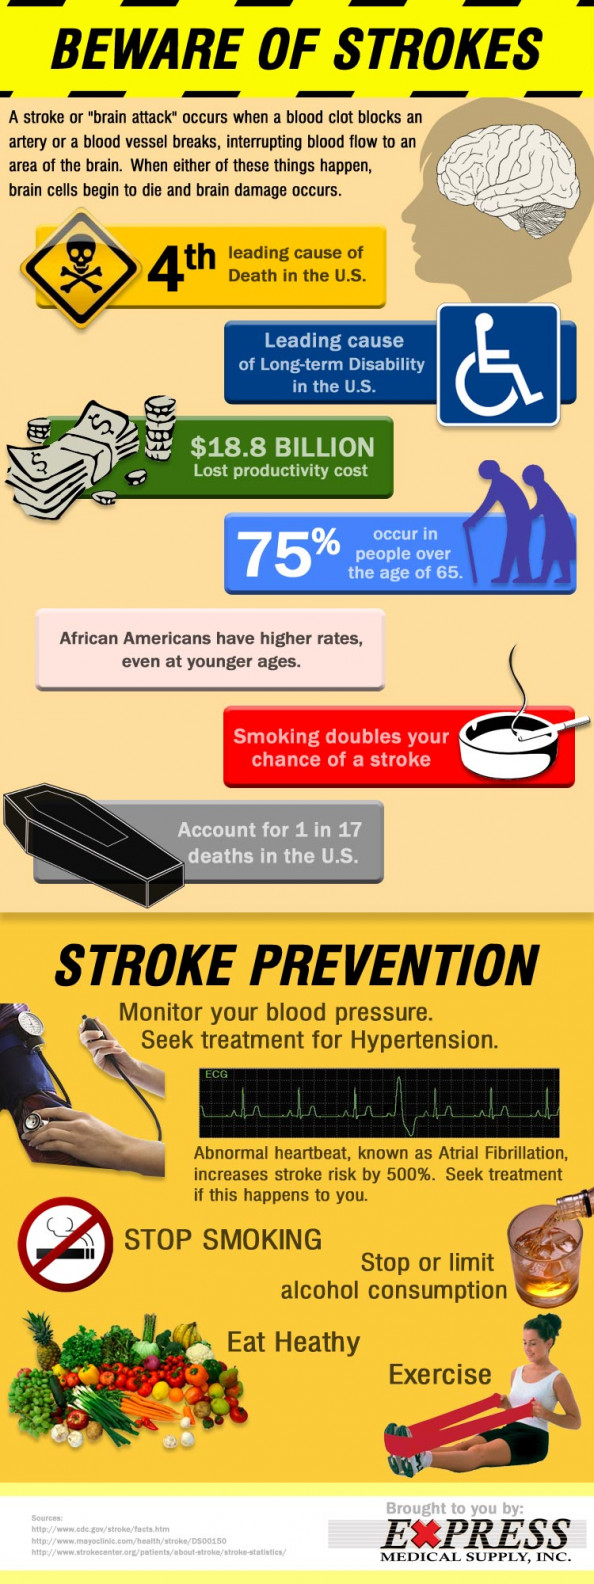 Beware of Strokes: Stroke Statistics and Prevention Infographic